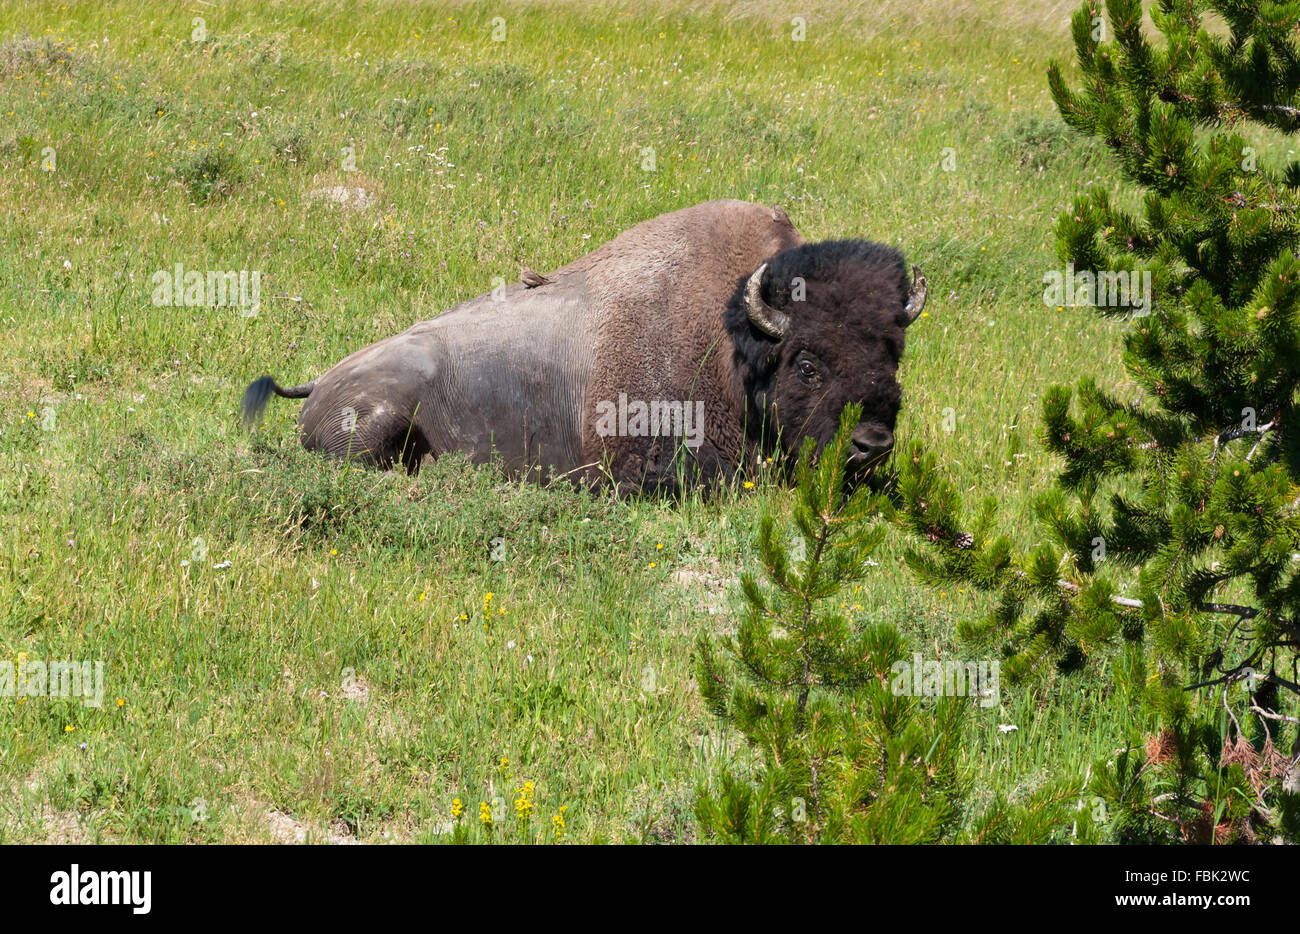 Bison sitting on grass at Yellowstone National Park - Stock Image